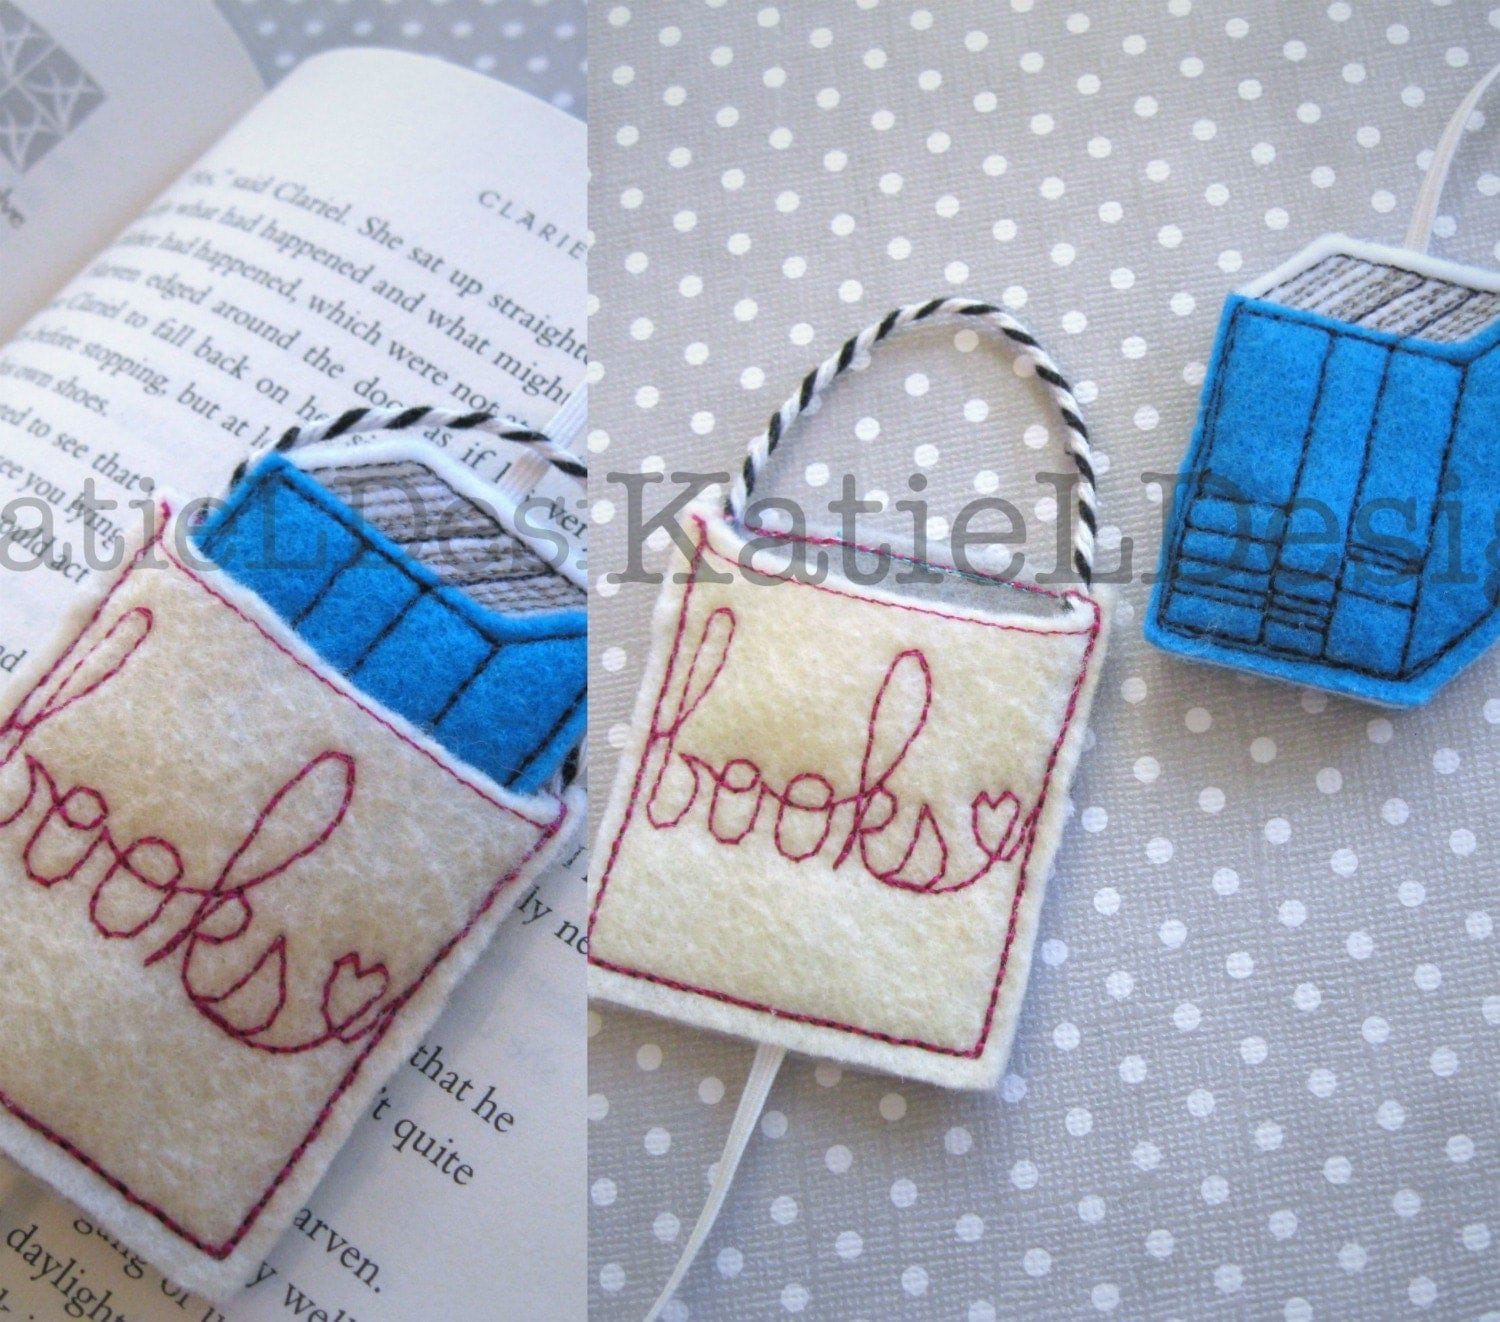 Ith bookmark book bag with books embroidery machine design